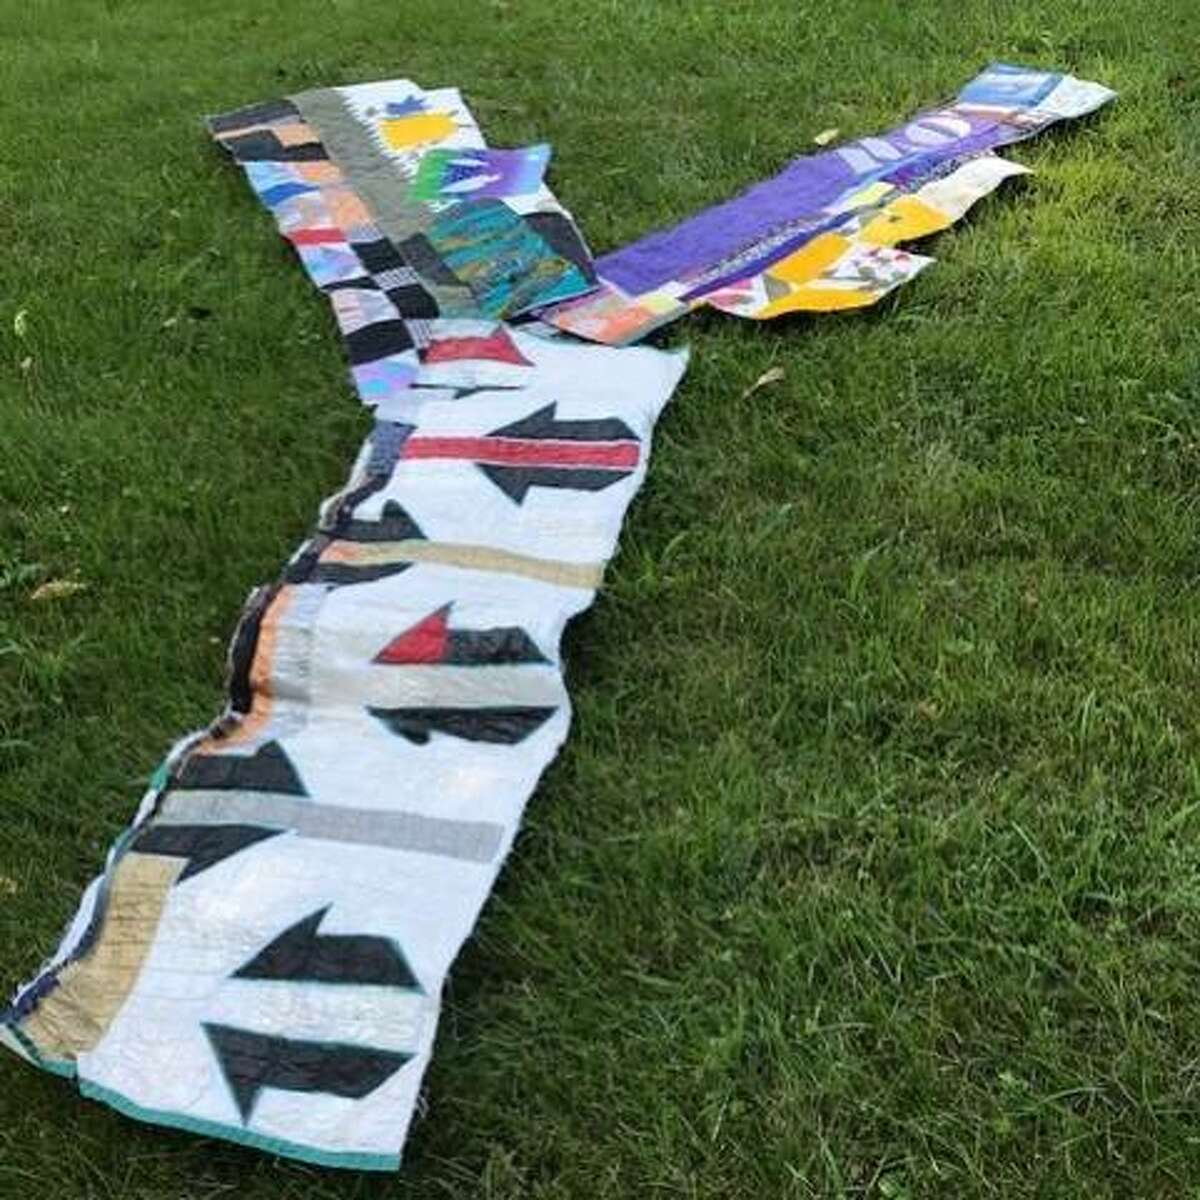 The Riverwork Project will have a temporary public art installation 8 am. to noon Saturday, Sept. 19, at the Mississippi Earthtones Festival. The art will be located on the grassy knoll overlooking the Alton Farmers' and Artisans' Market.